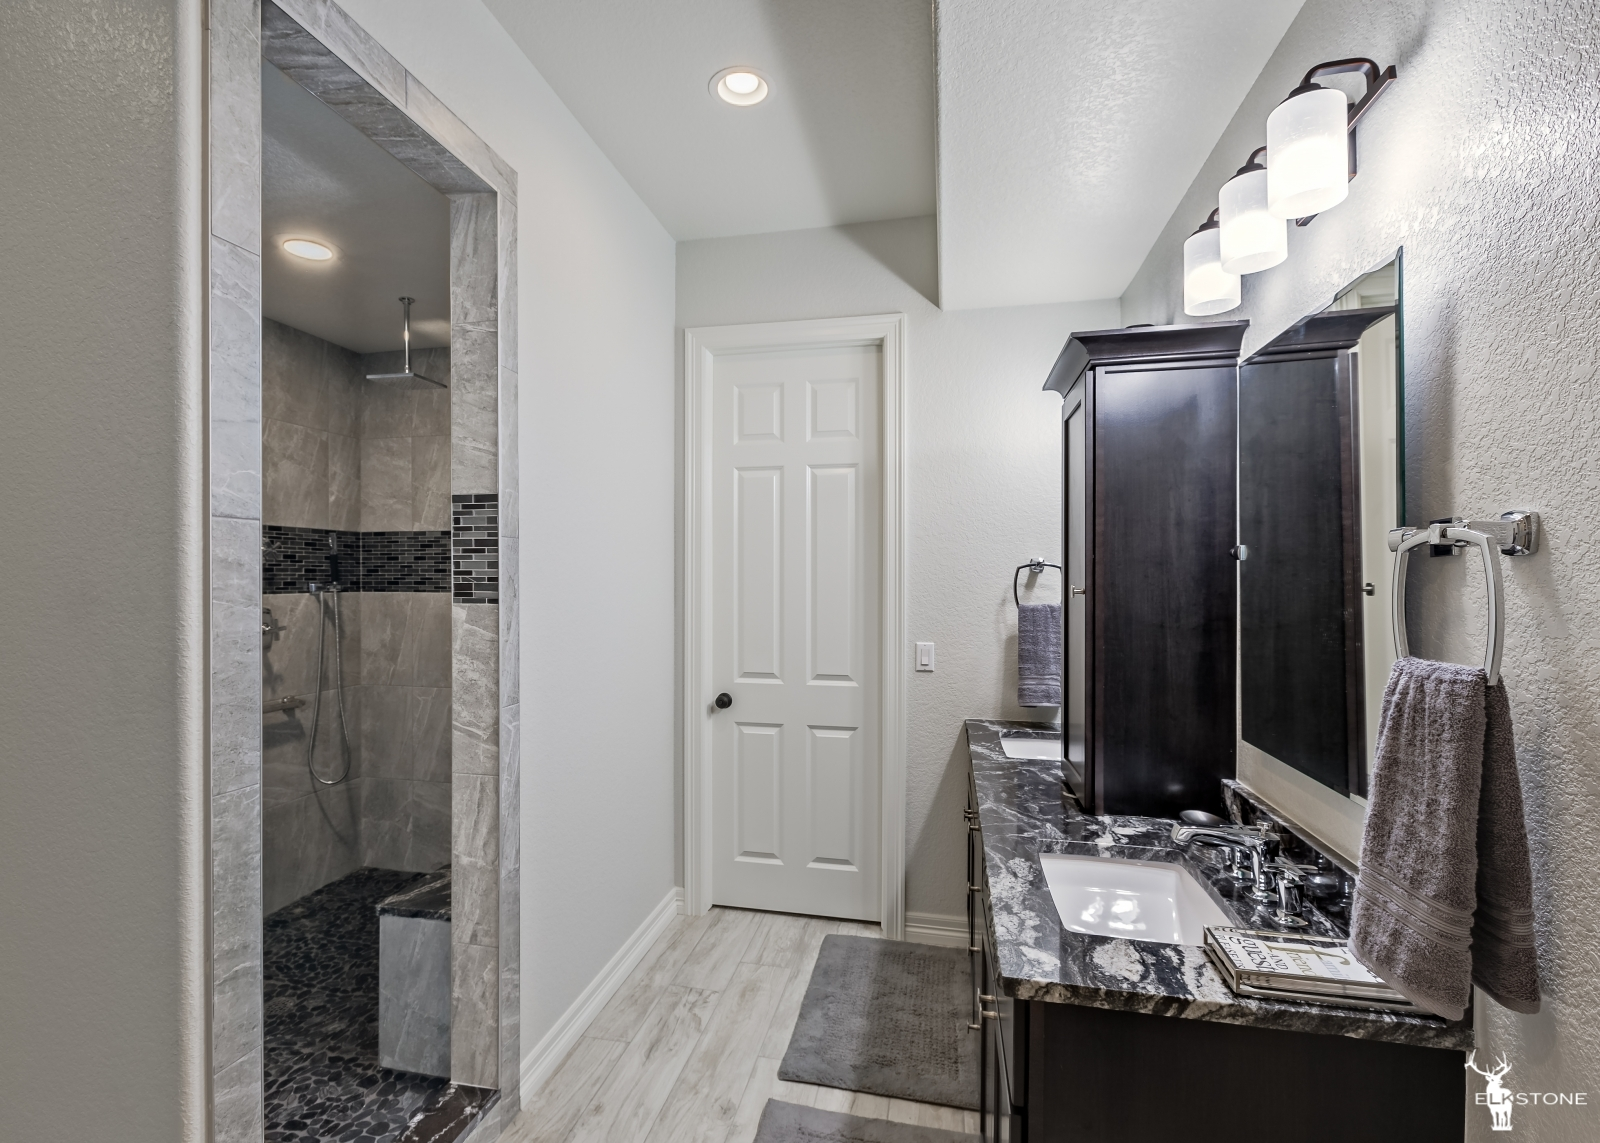 3044ElkCanyon-Bathroom-02